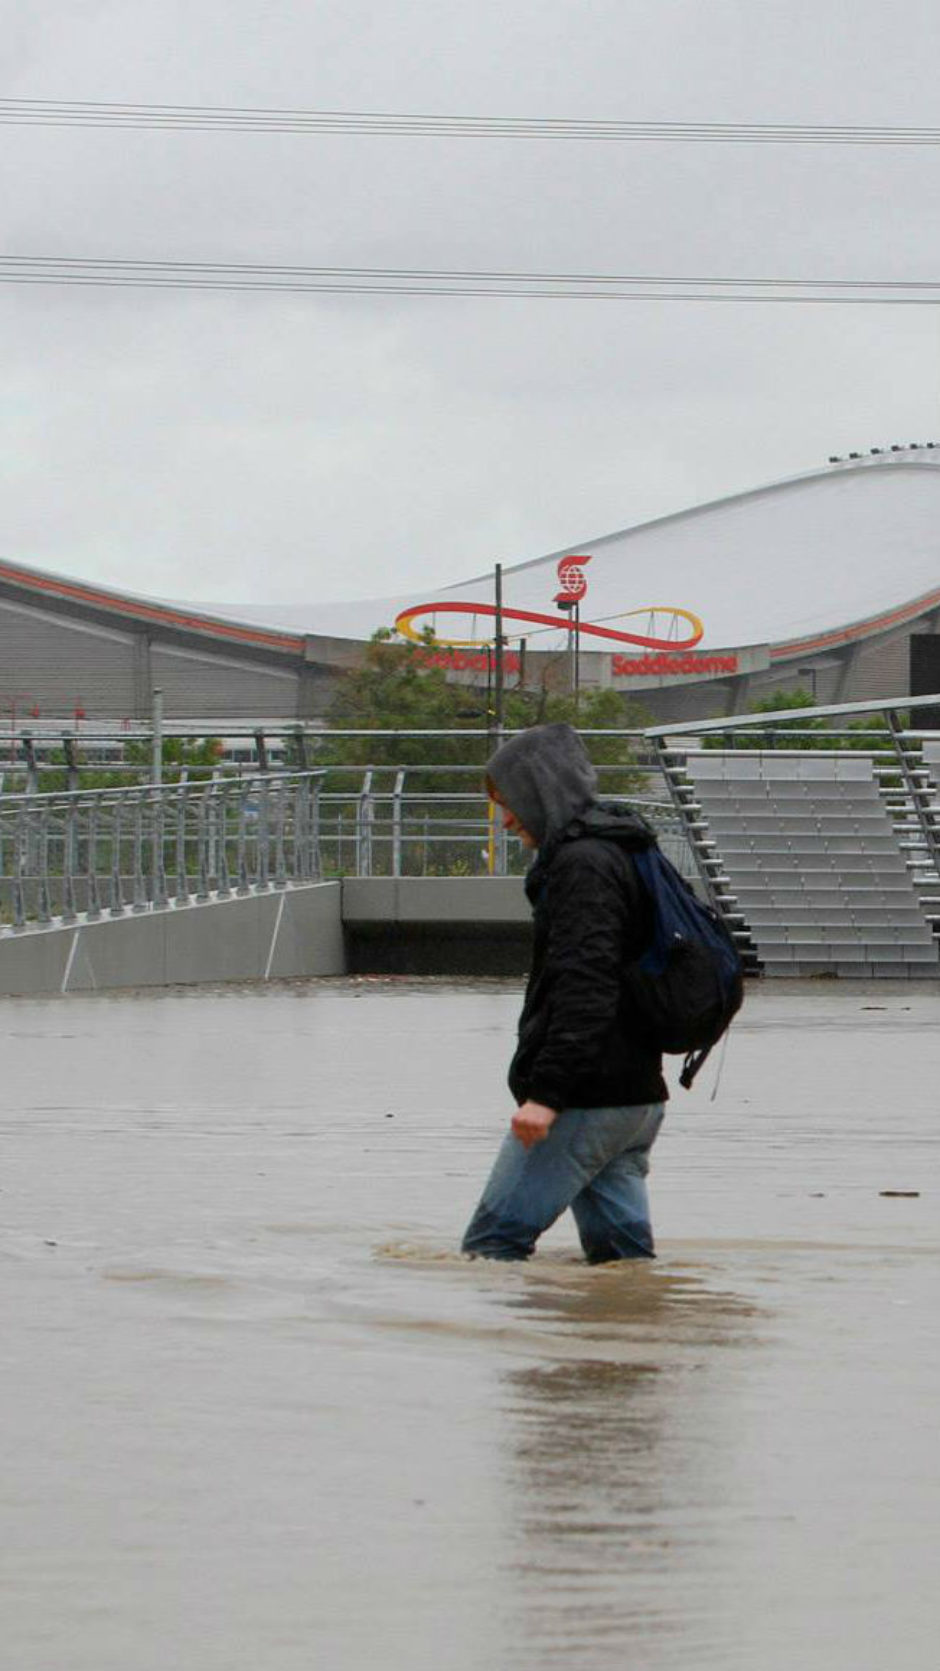 A man walks, thigh-deep in water, along Ninth Avenue in downtown Calgary during the 2013 flood.